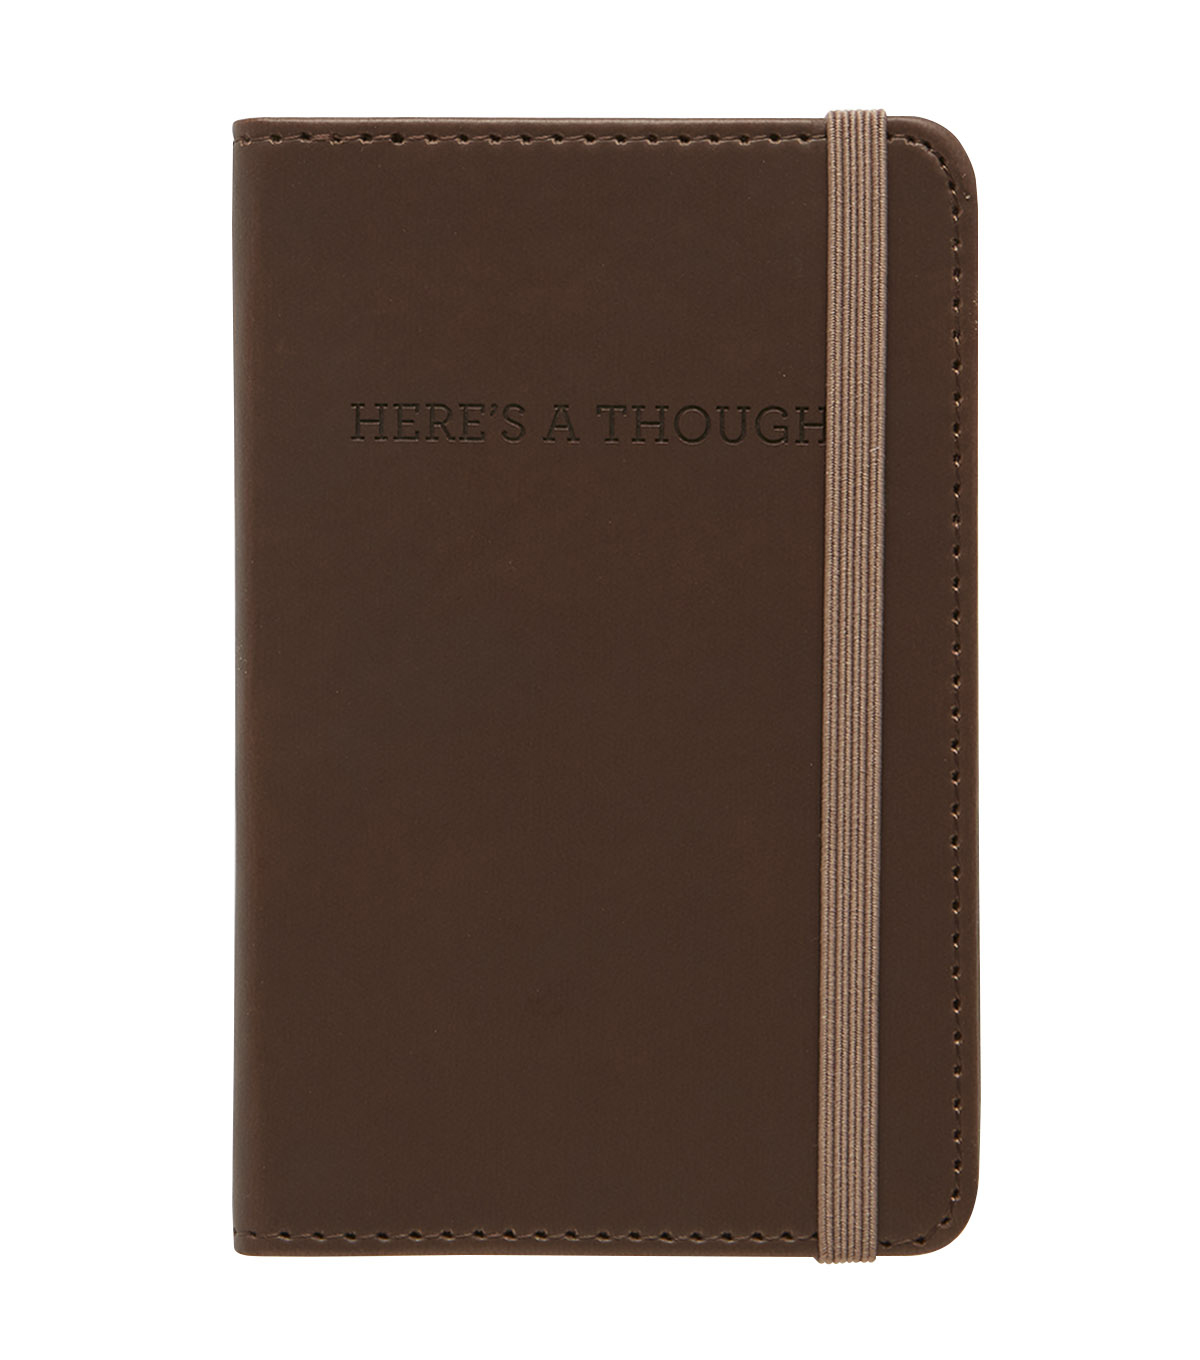 Park Lane Small Journal-Brown Thought